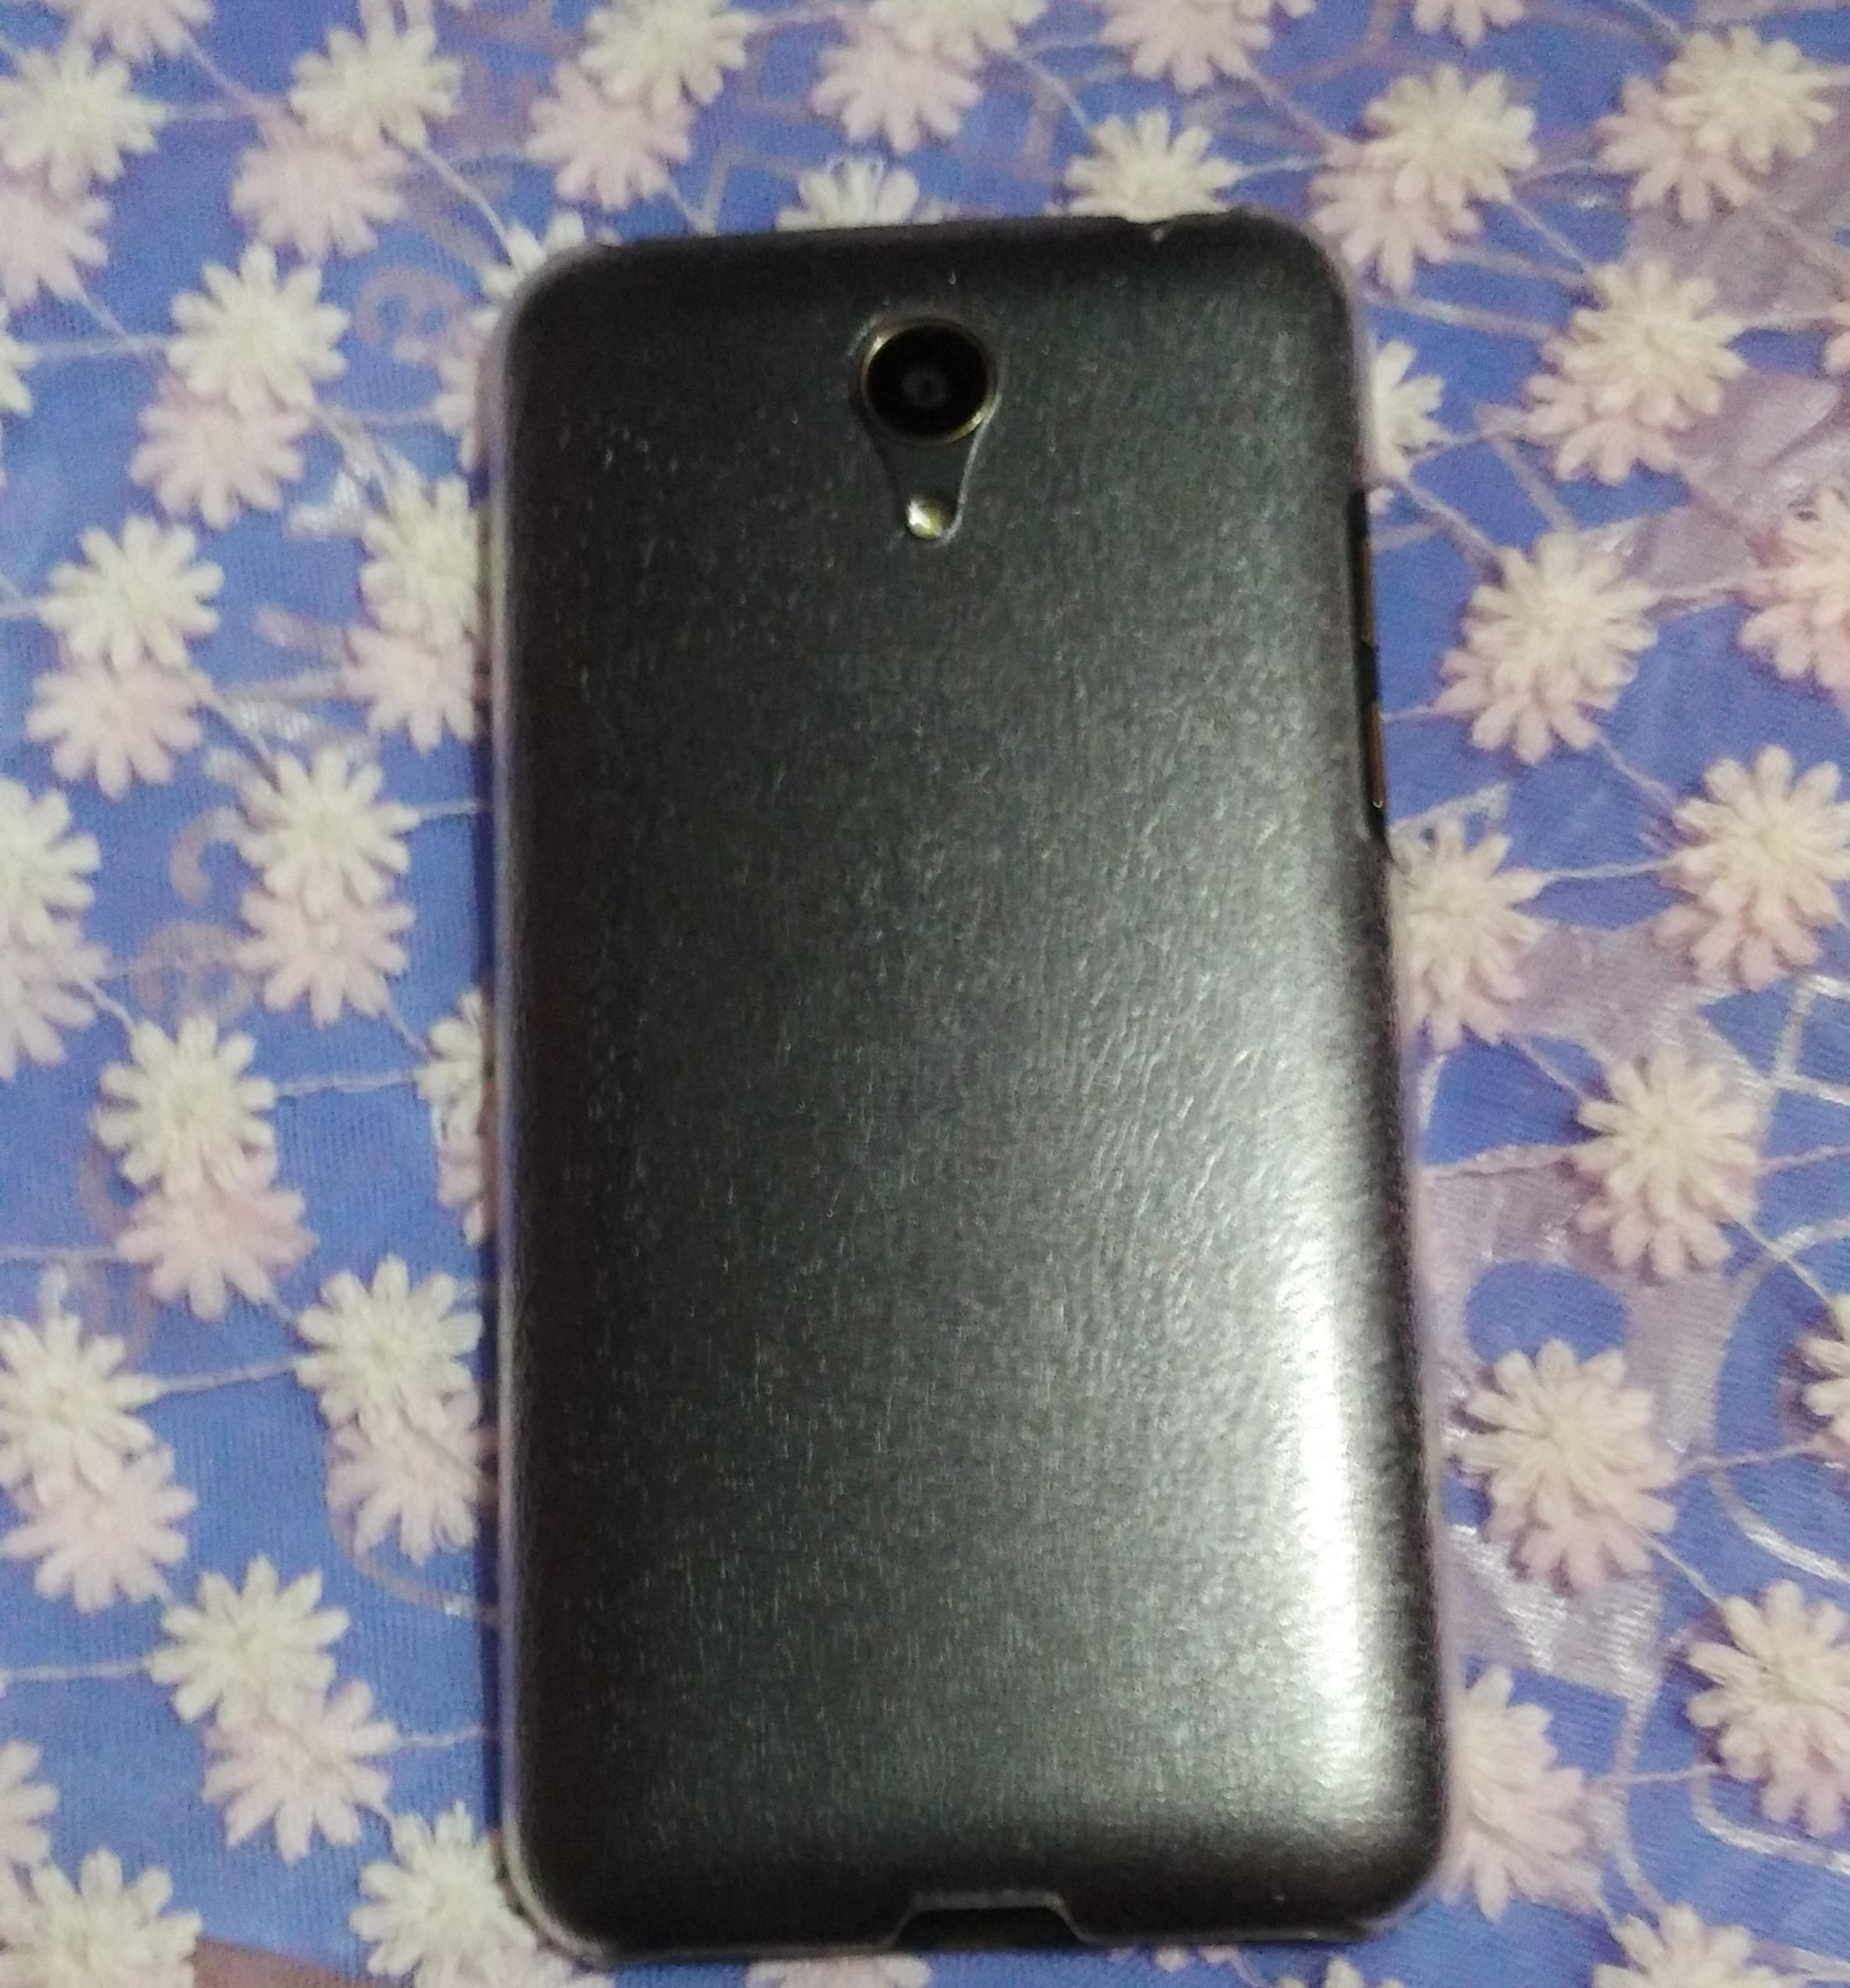 Intex Cloud 4 G Star Backside Look with backcover